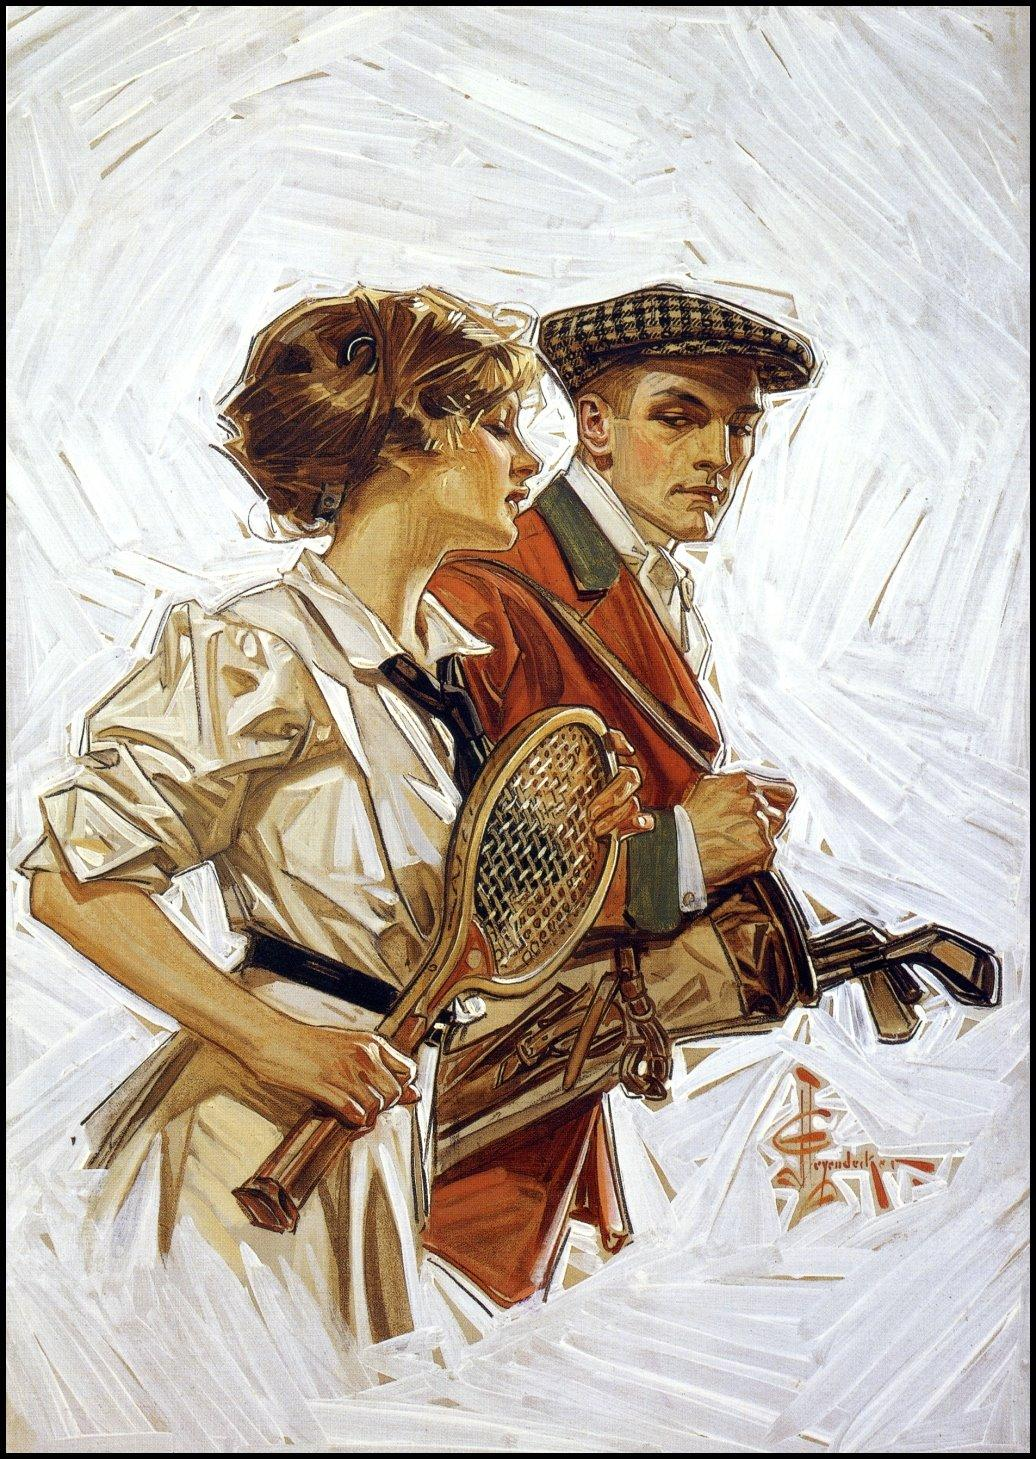 A Different Drummer: J. C. Leyendecker: Early 20th century Illustrator